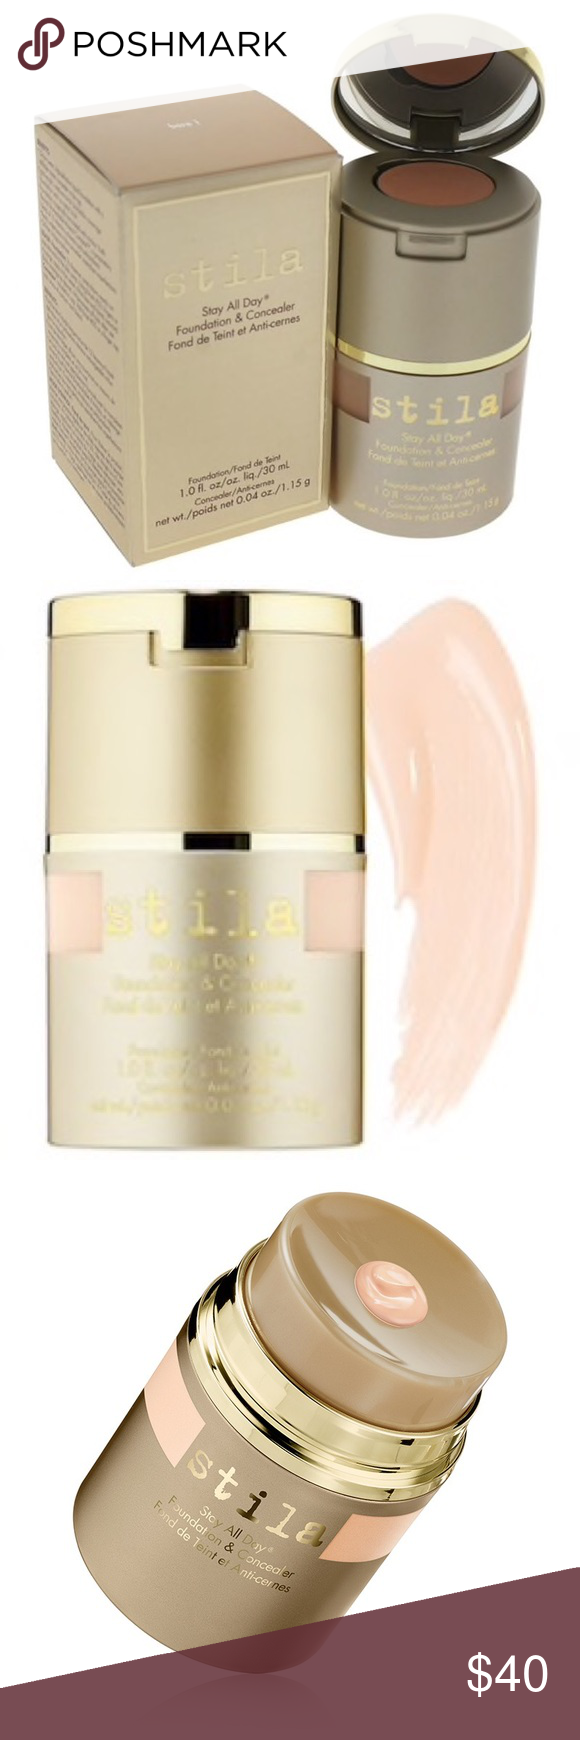 NIB STILA STAY ALL DAY FOUNDATION + CONCEALER Bare 1